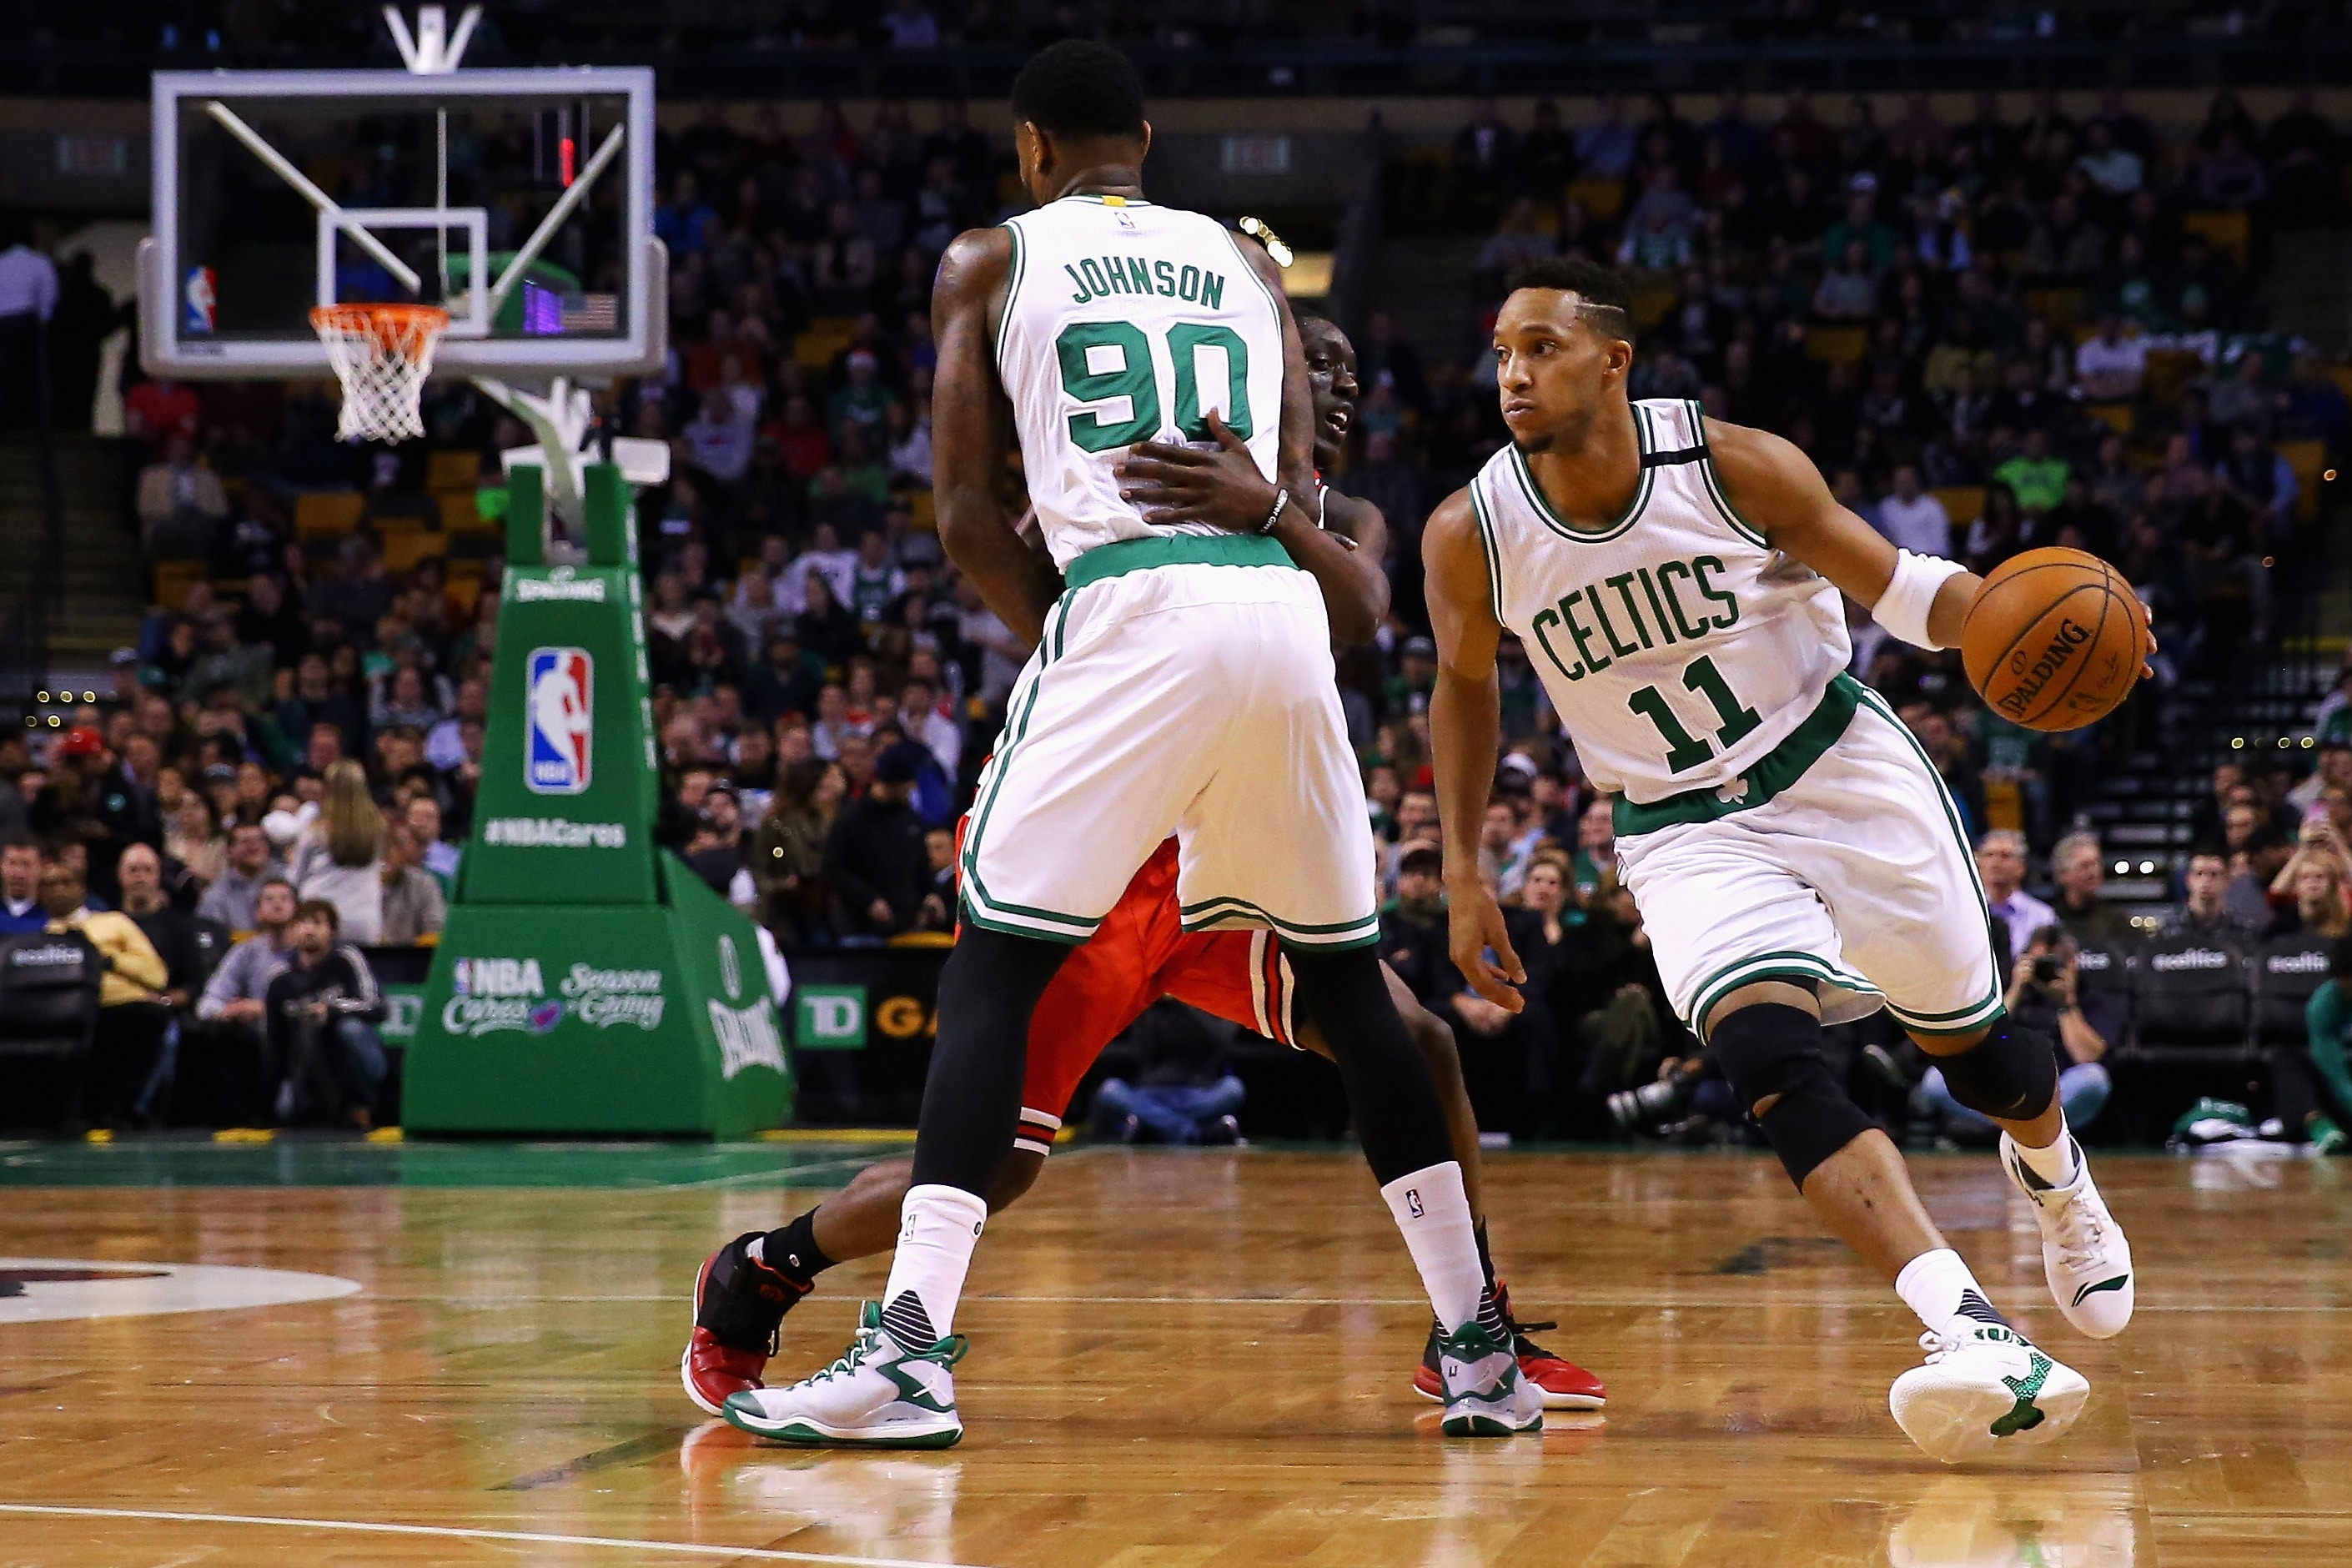 photos: bulls vs. celtics - dec. 9, 2015 | boston celtics